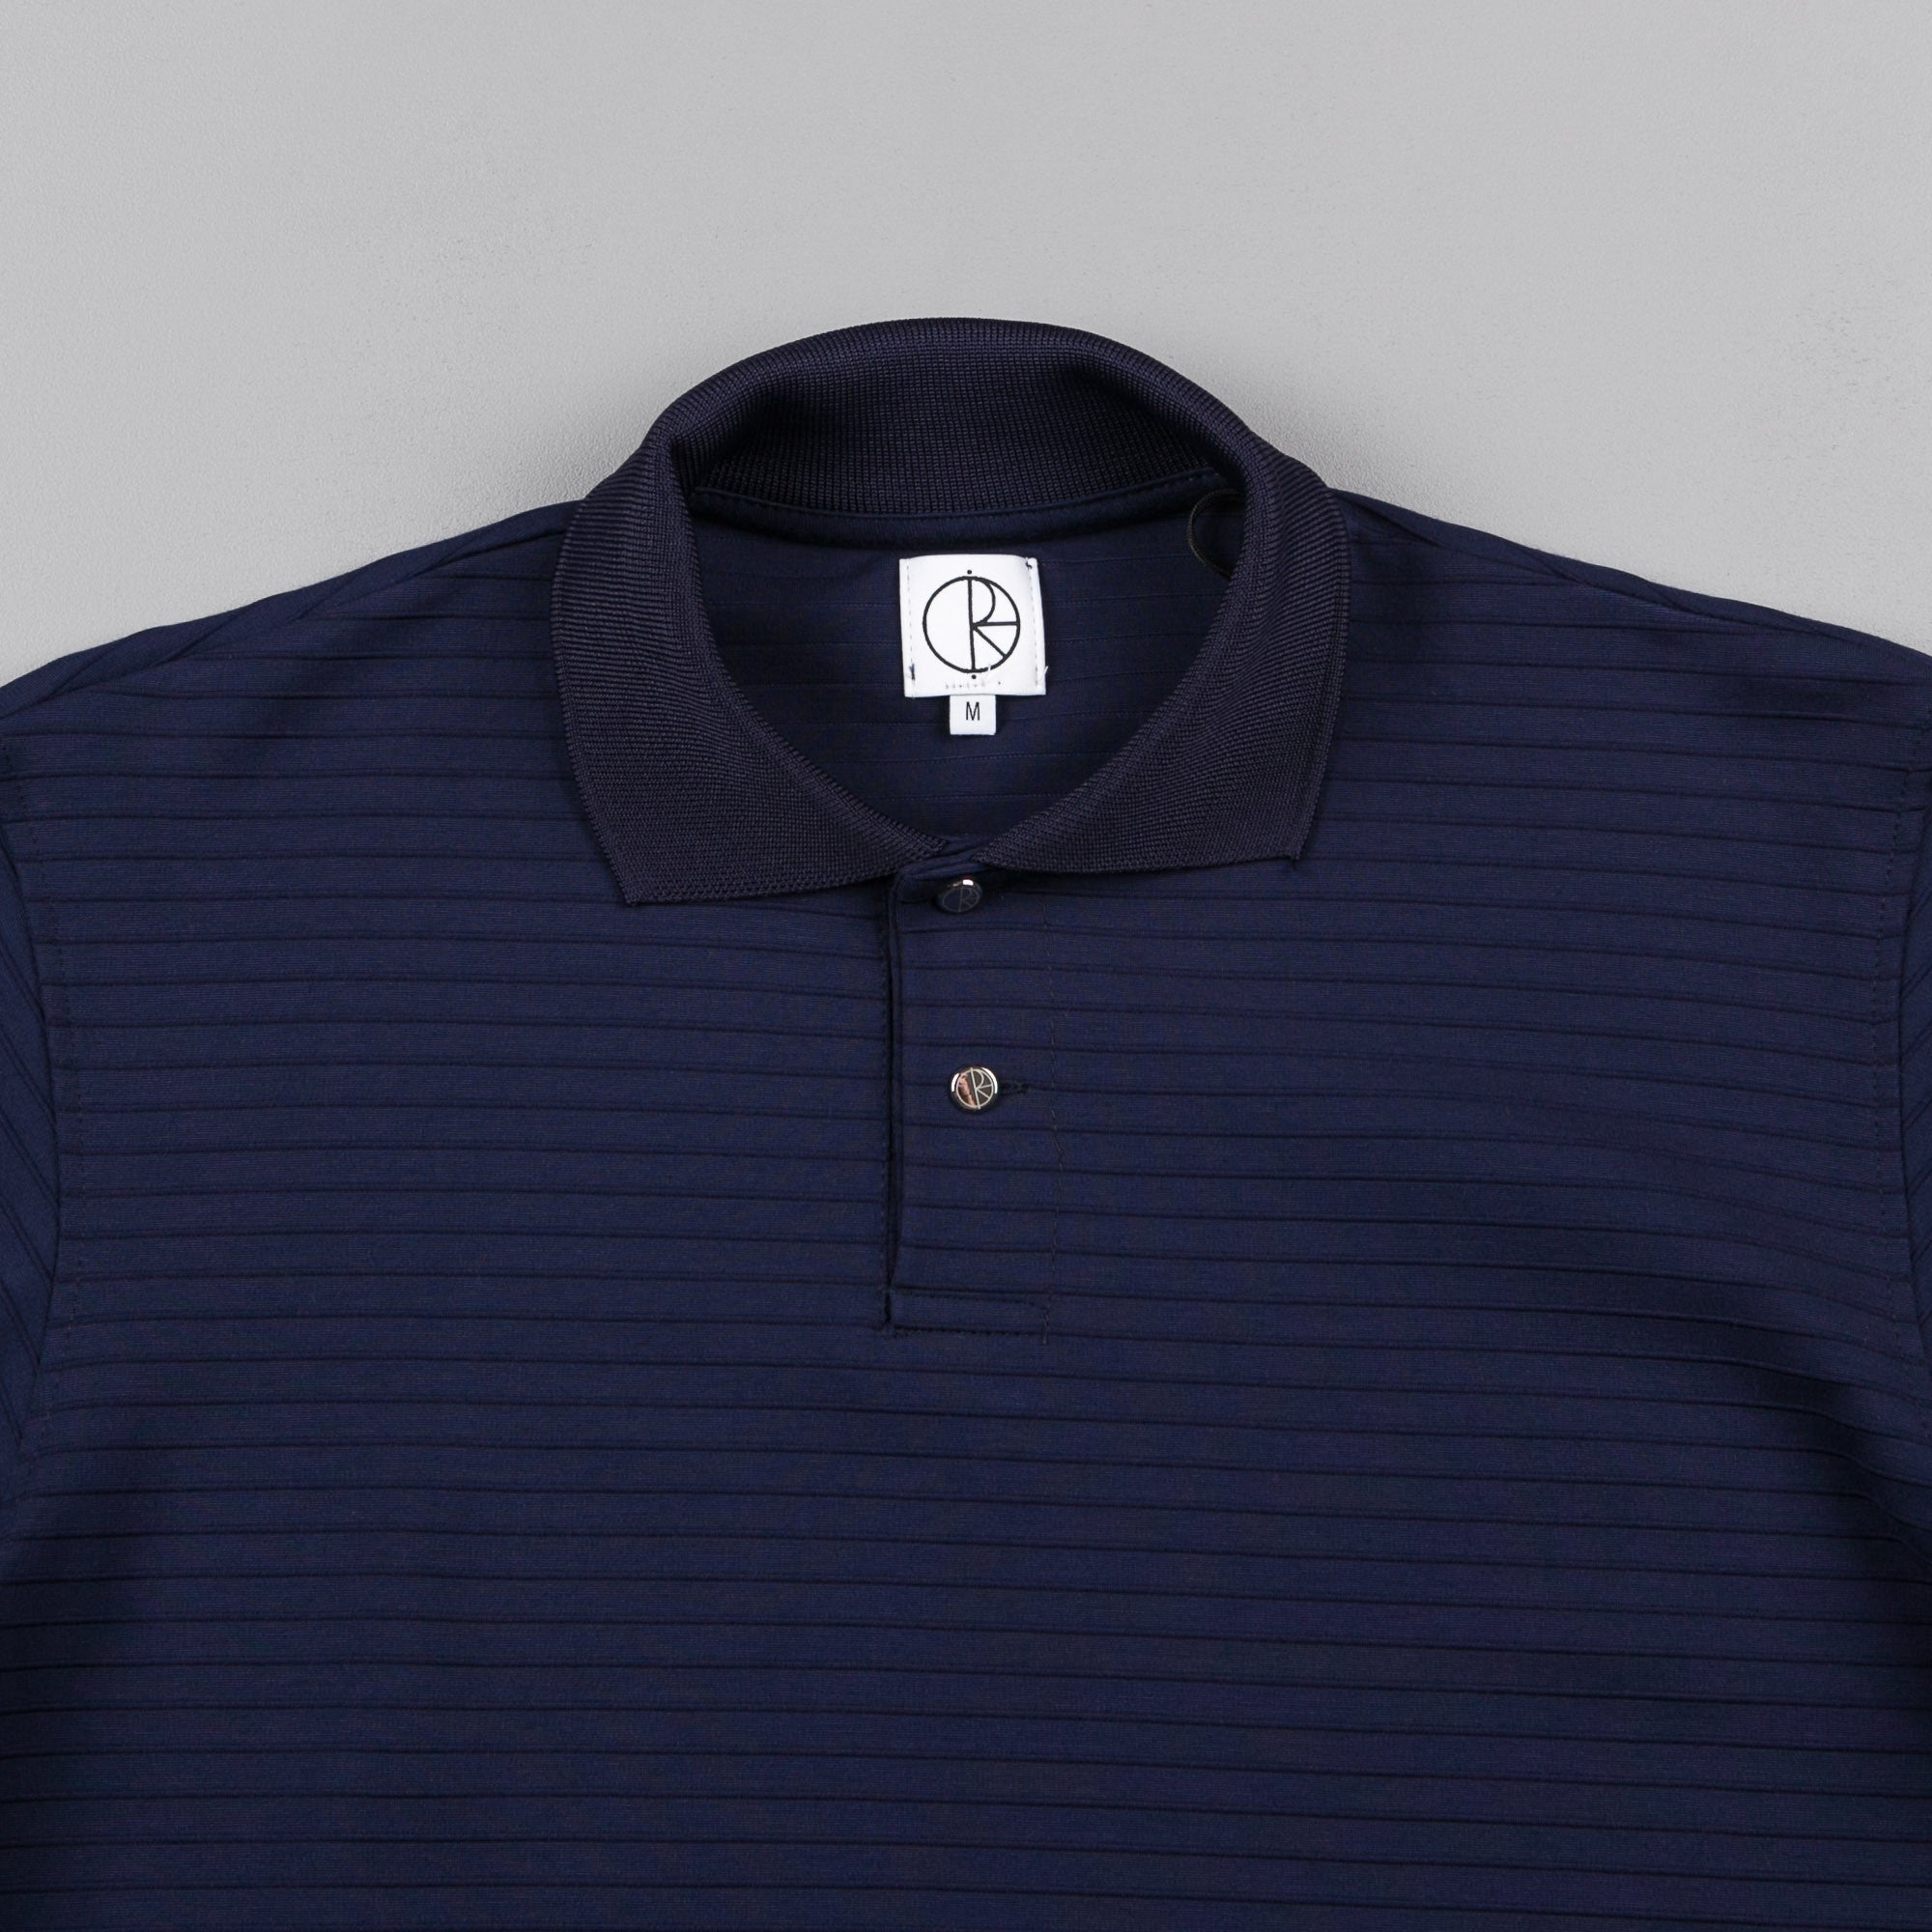 Polar Striped Pique Shirt - Navy